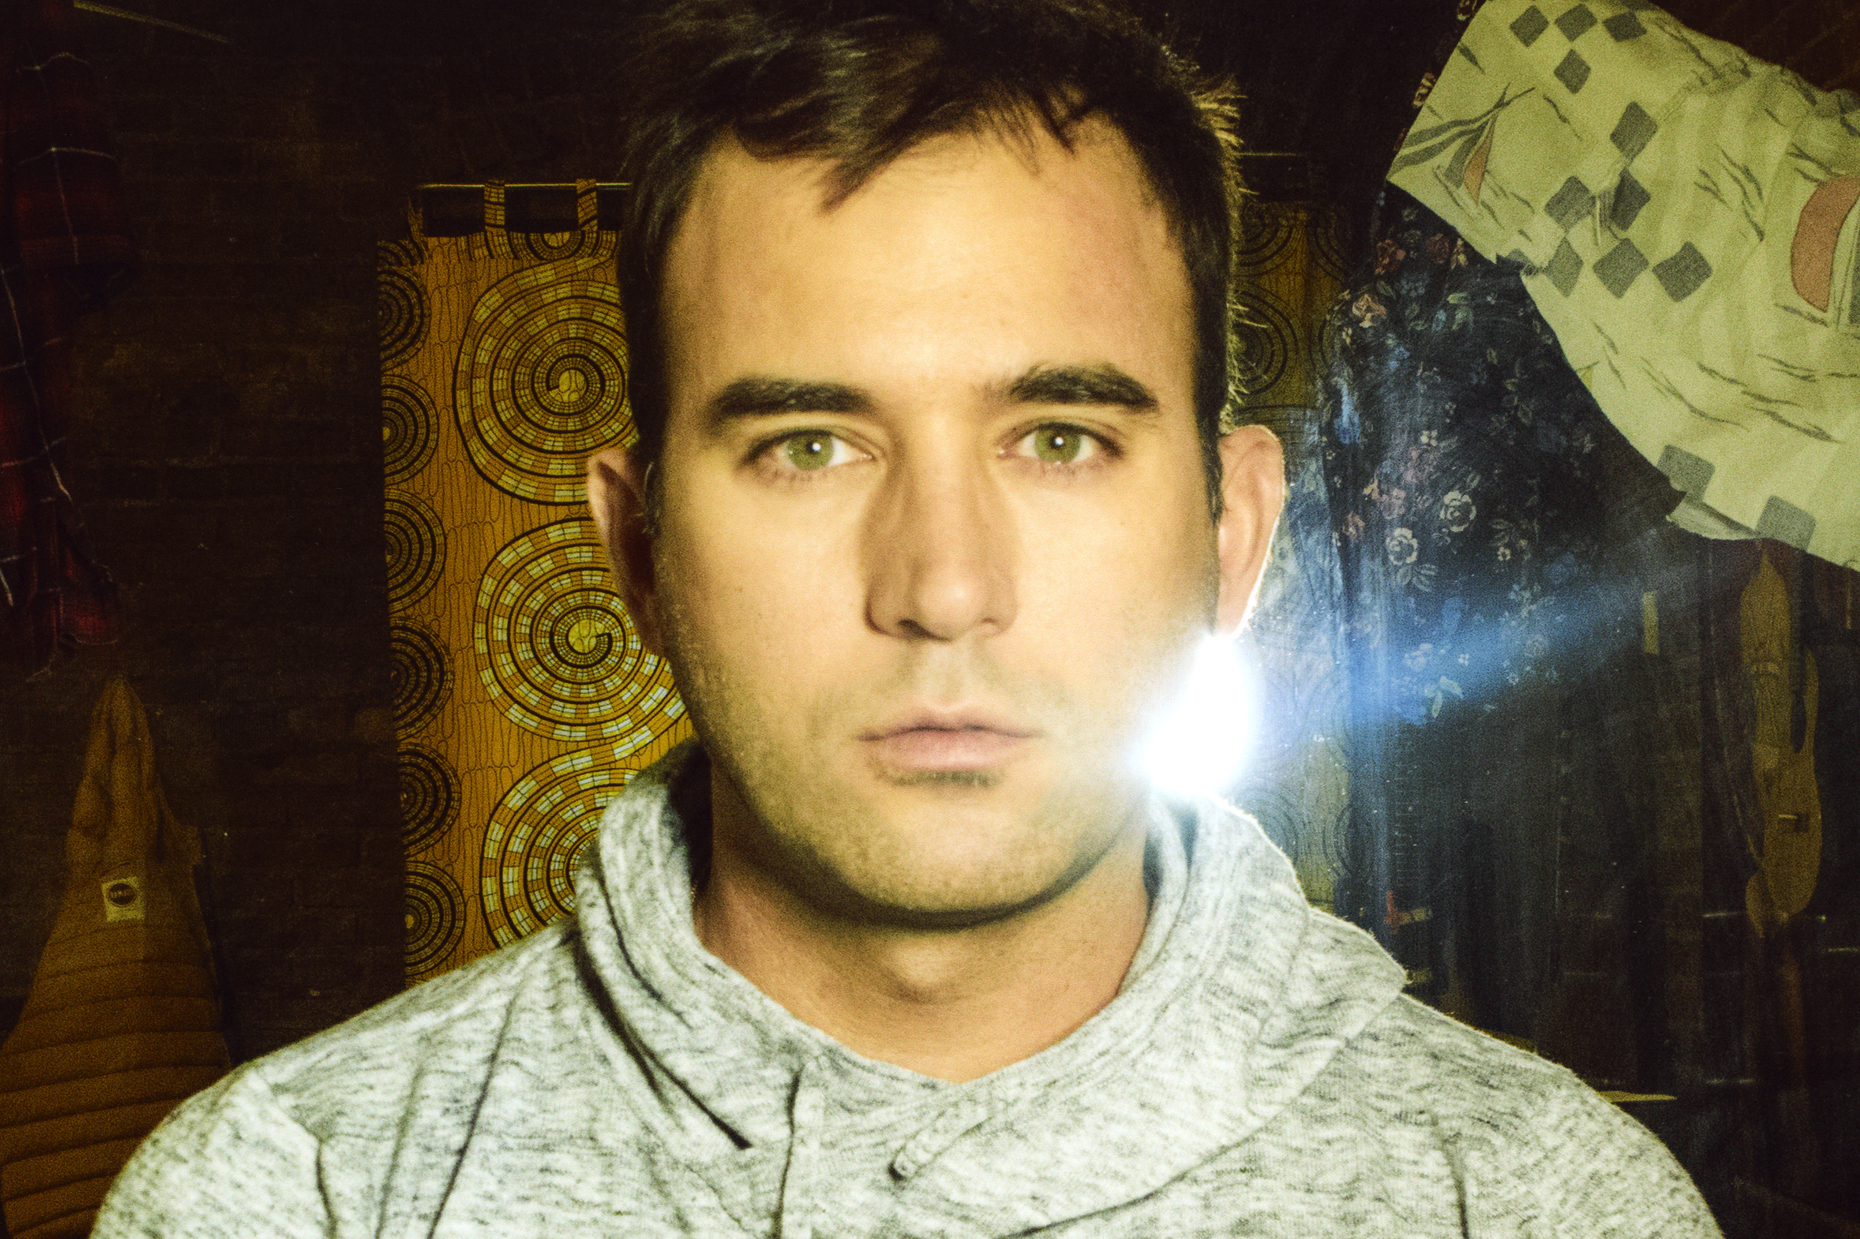 Sufjan Stevens shares two new tracks, 'Love Yourself' and 'With My Whole Heart'